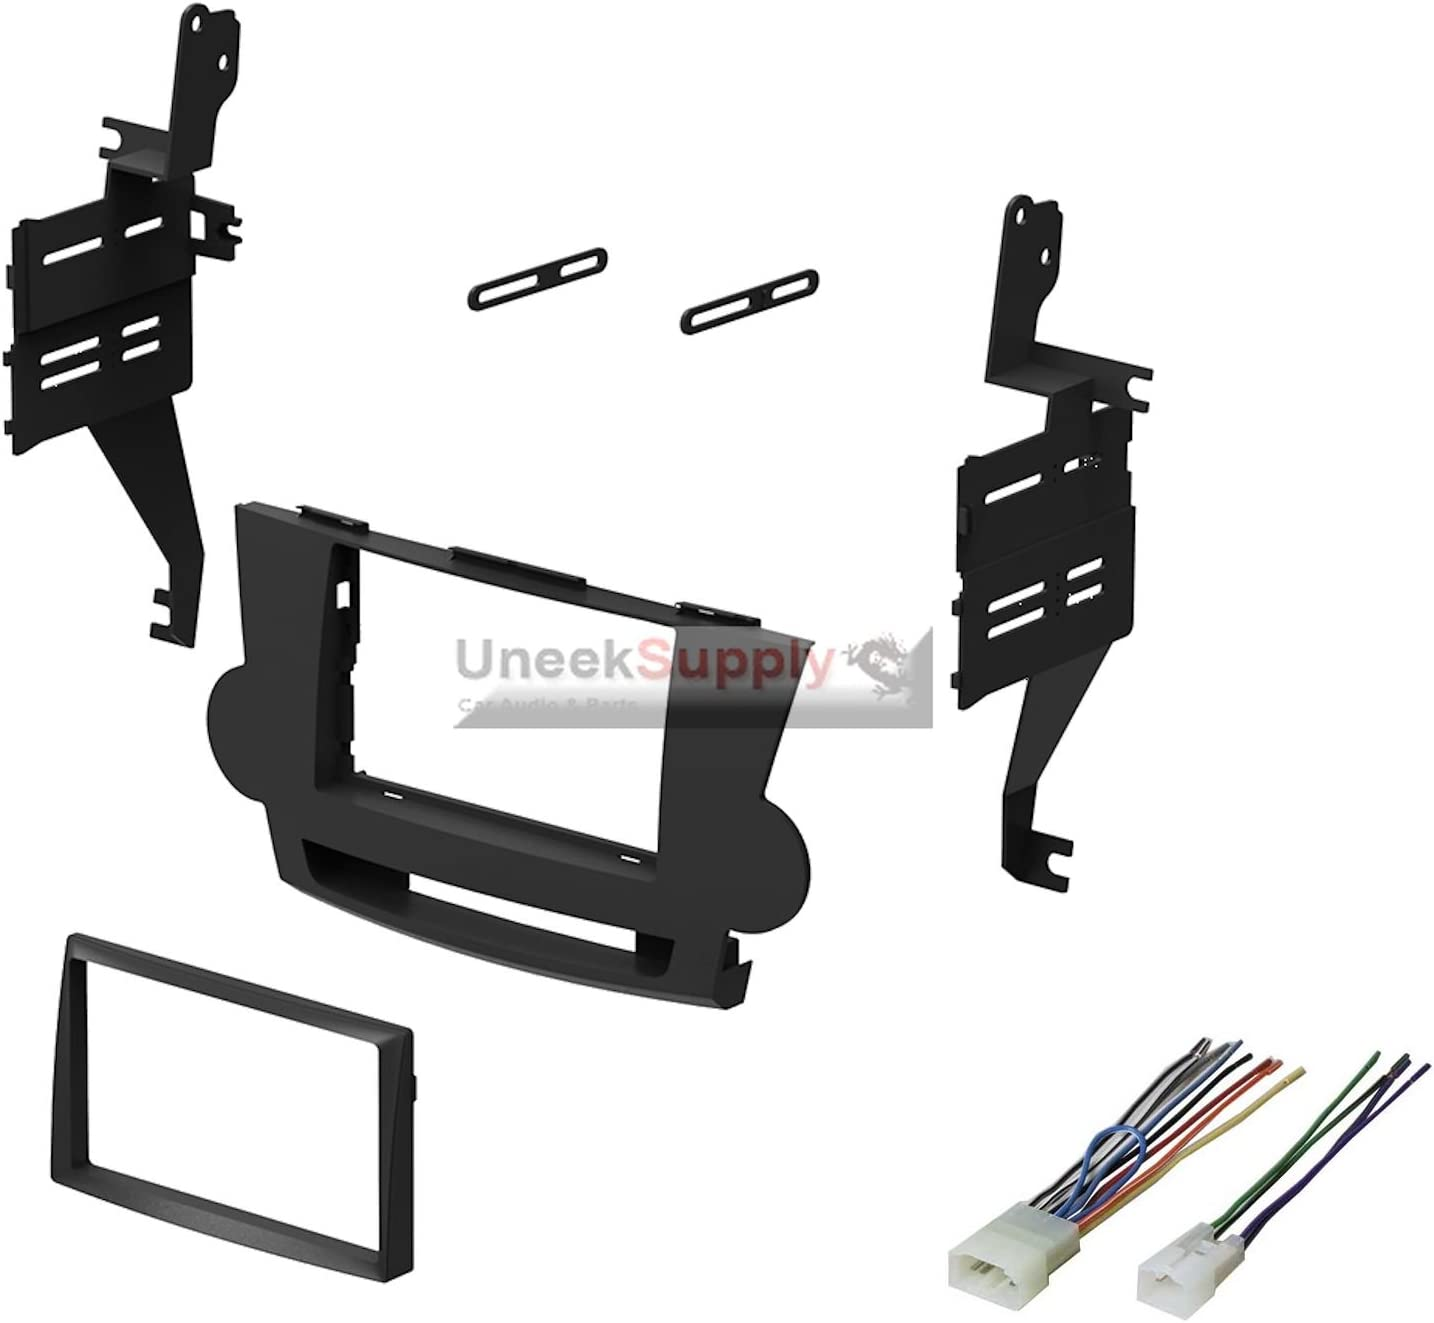 Amazon.com: Dash Kit for 2008 2009 2010 2011 2012 Toyota Highlander Double  Din Stereo Install with Wire HarnessAmazon.com